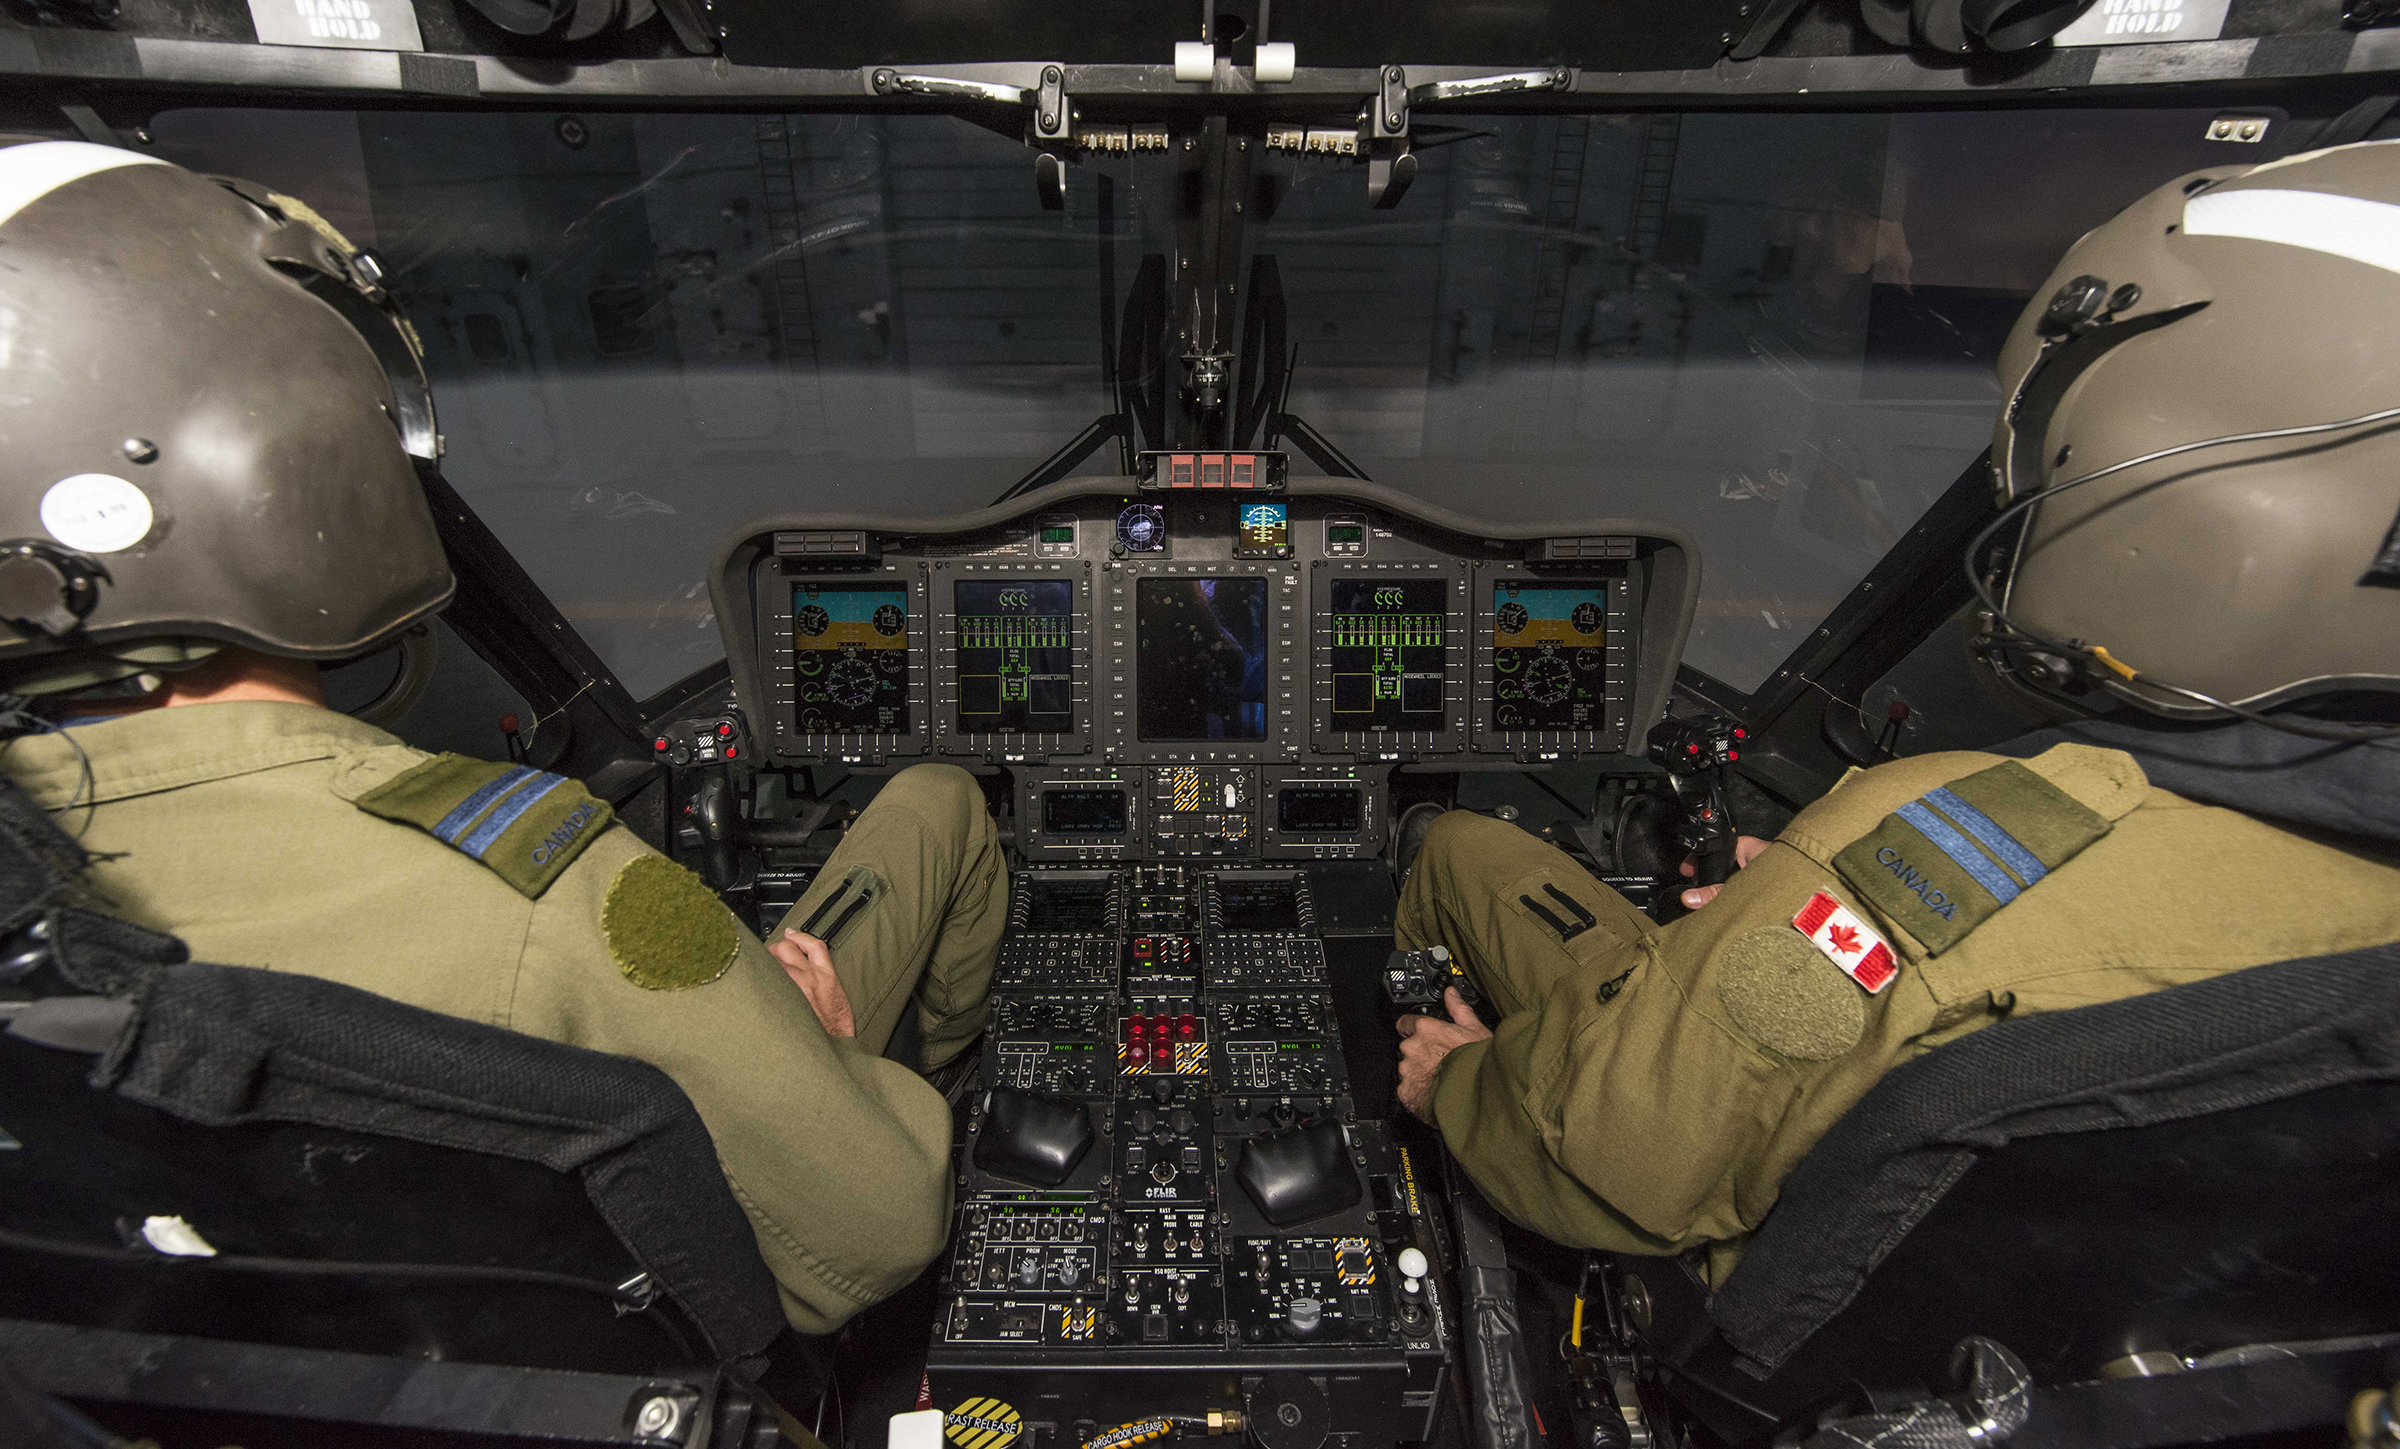 Two people wearing helmets and flight suits sit with their backs to the camera facing an aircraft control panel and aircraft windows.